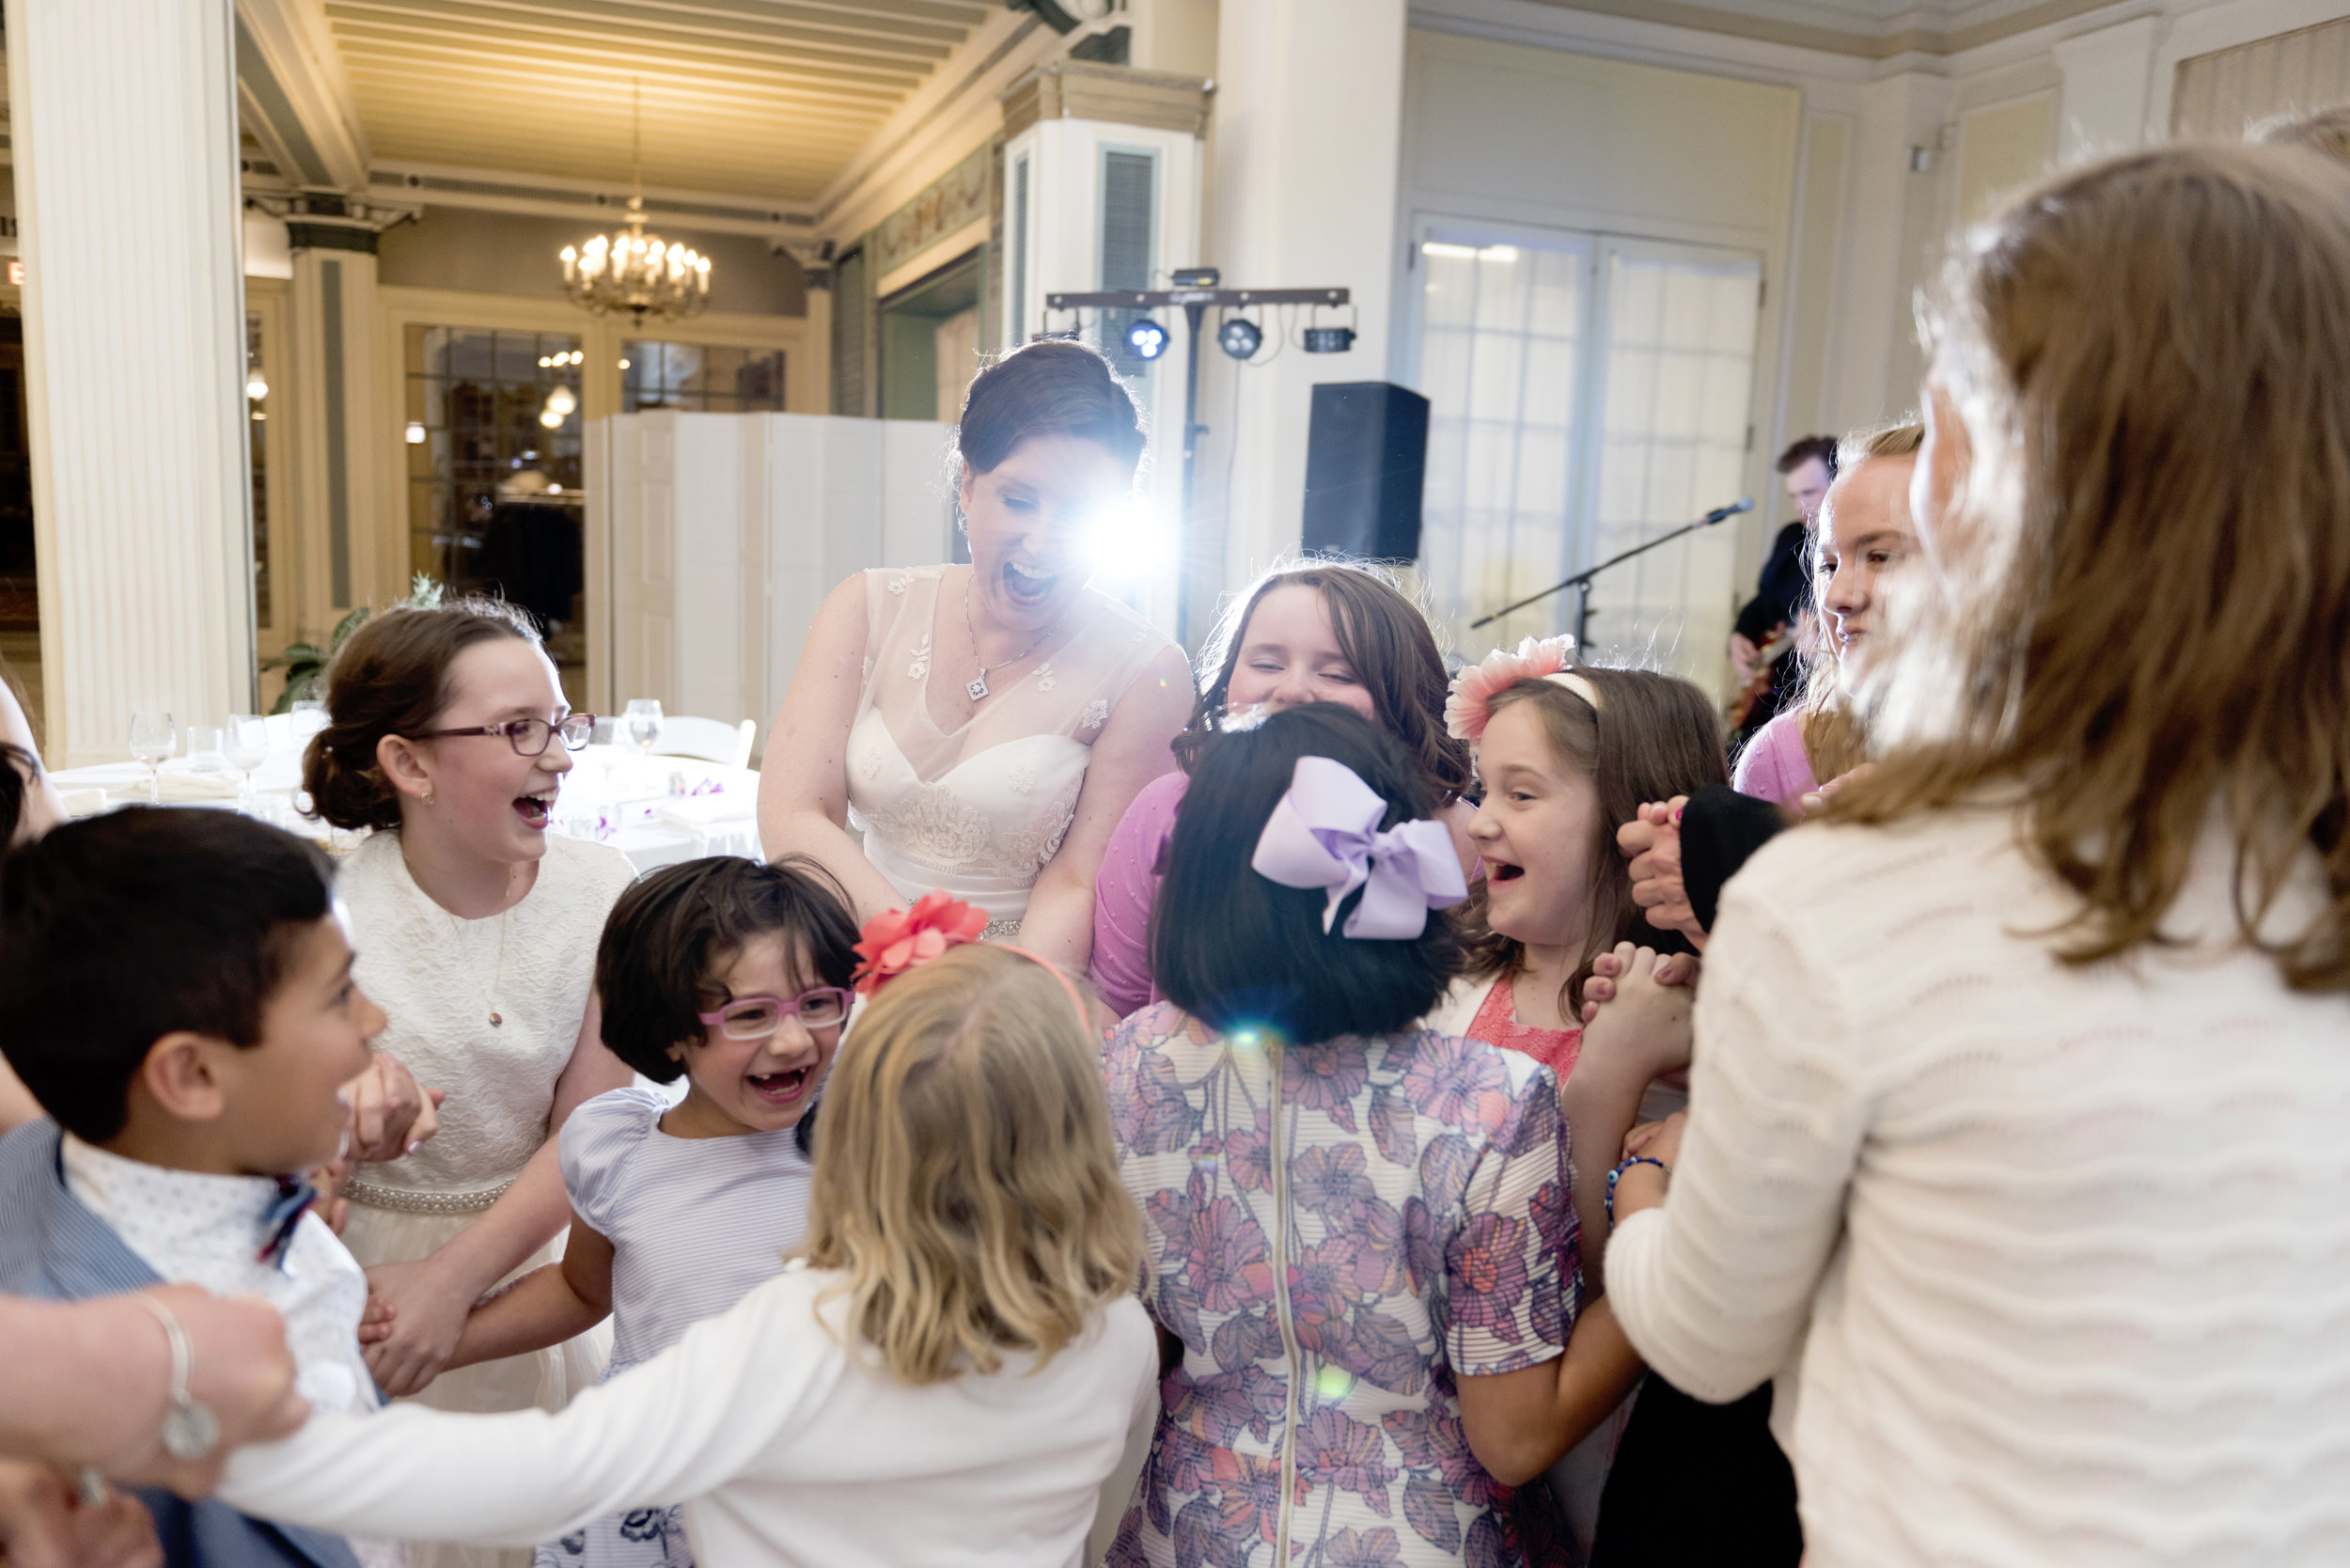 chicago-wedding-photographer-south-shore-cultural-center-dance-party©COPYRIGHTCMP-9151.jpg